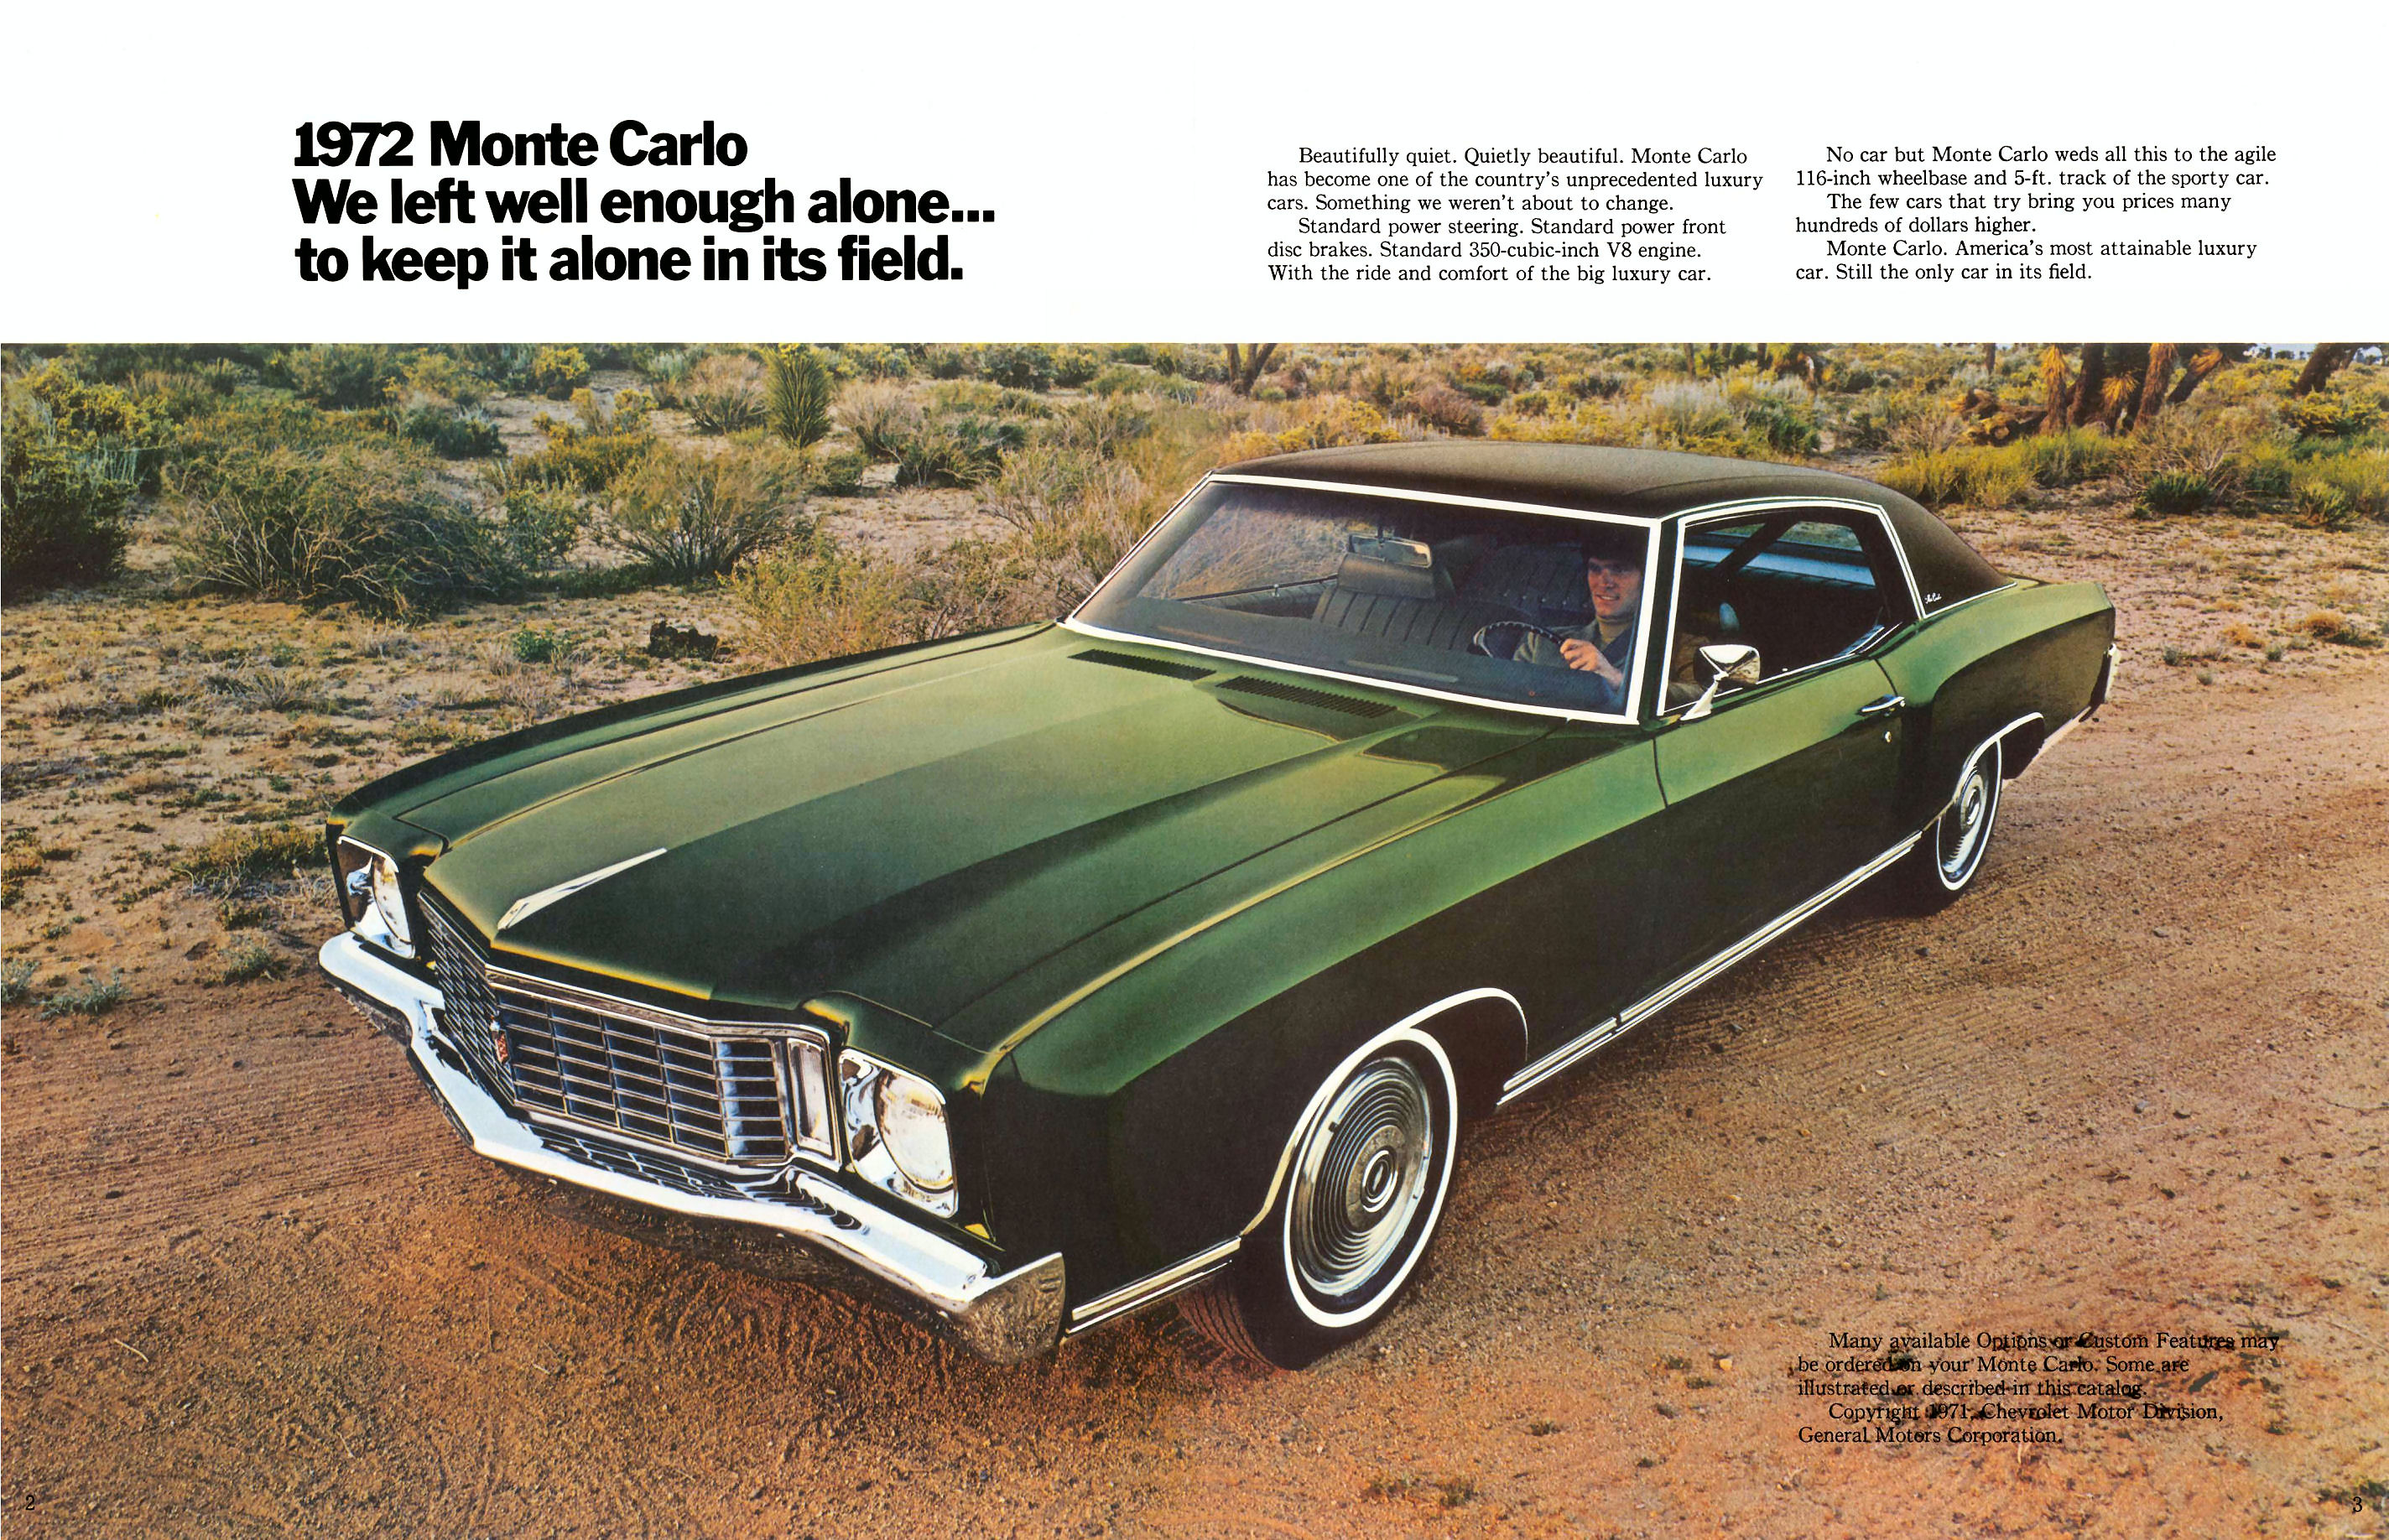 chevrolet monte carlo images #4